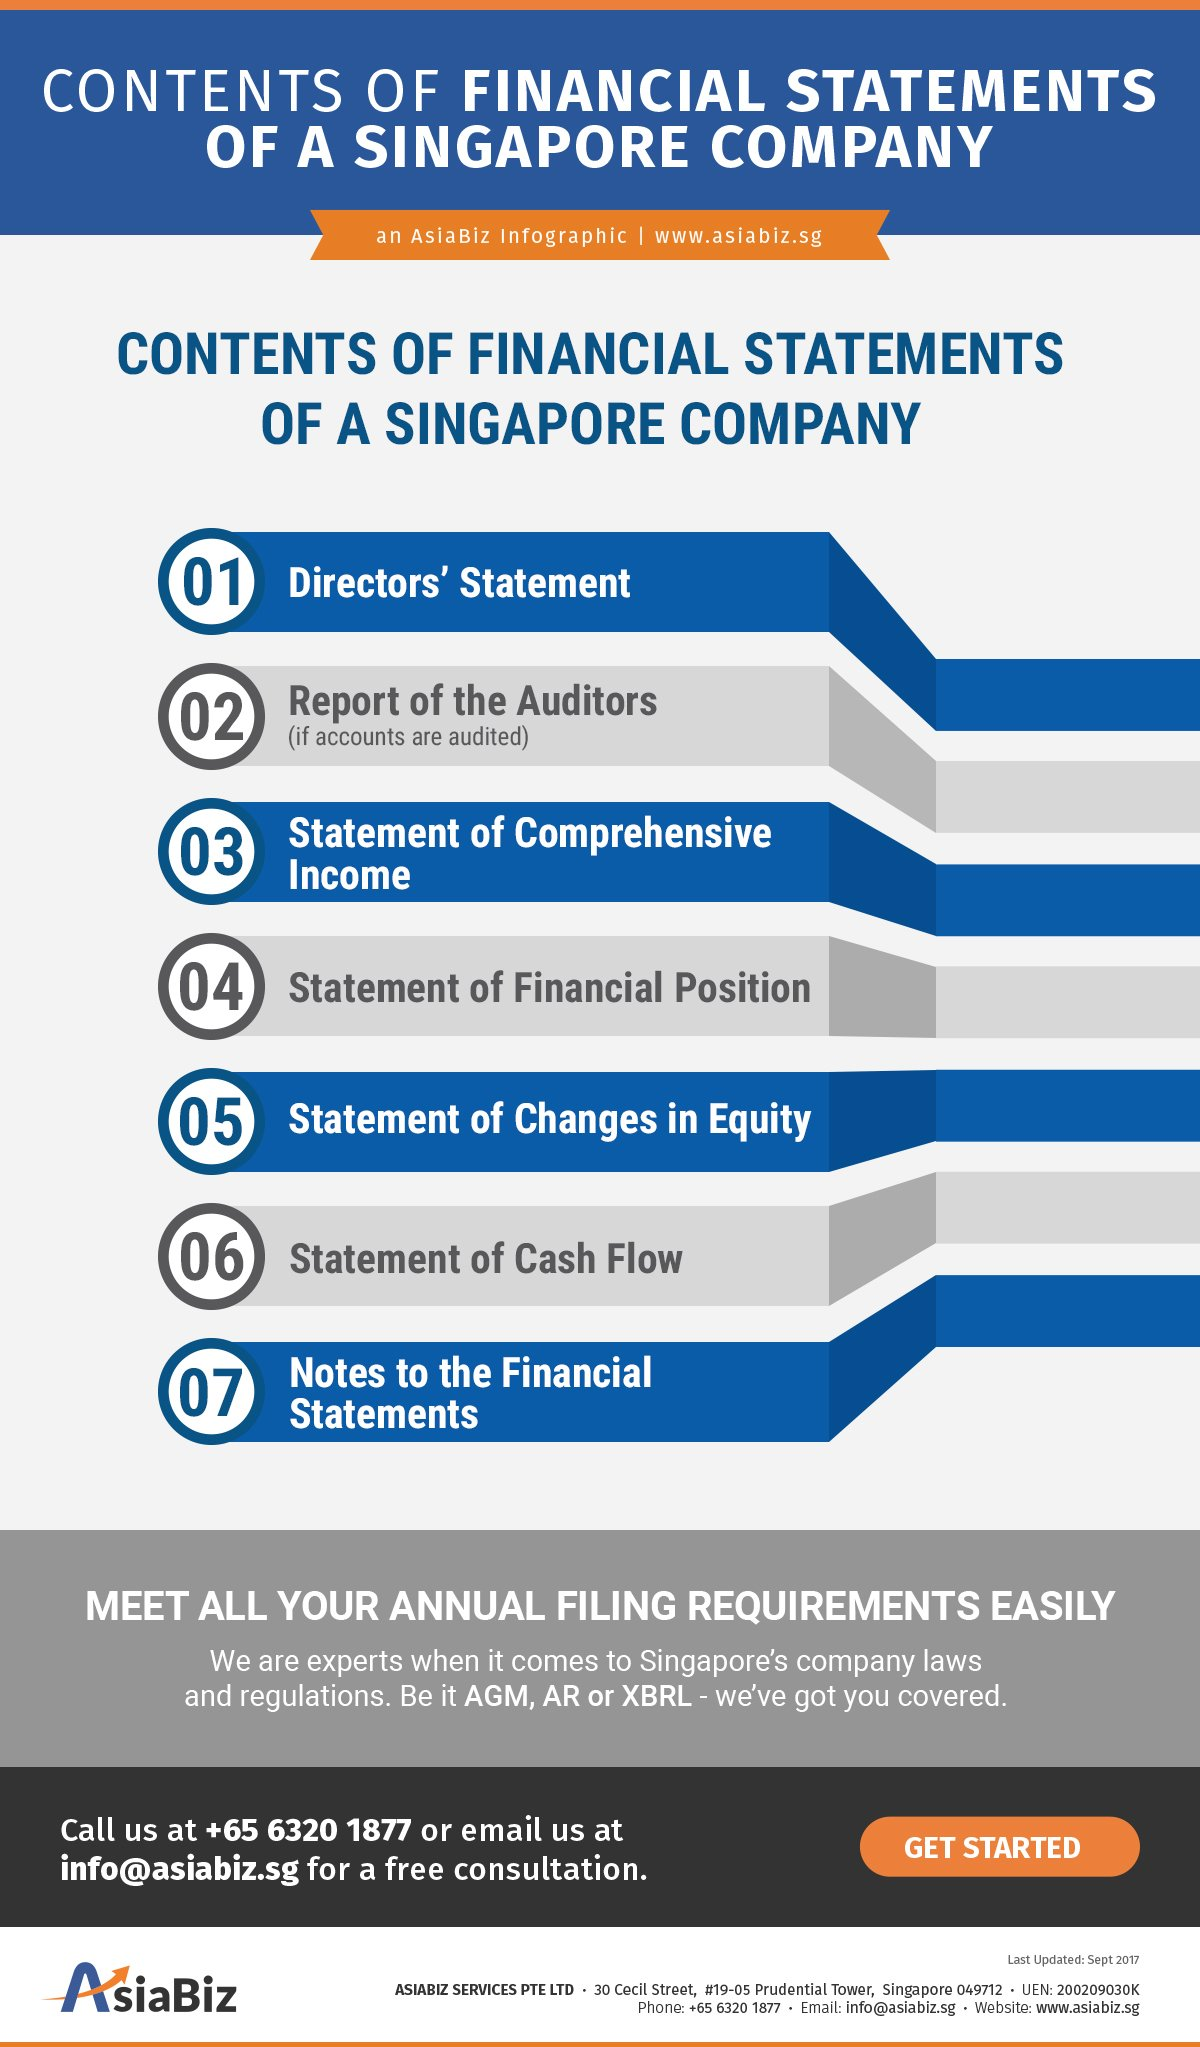 Singapore company financial statements what they should contain